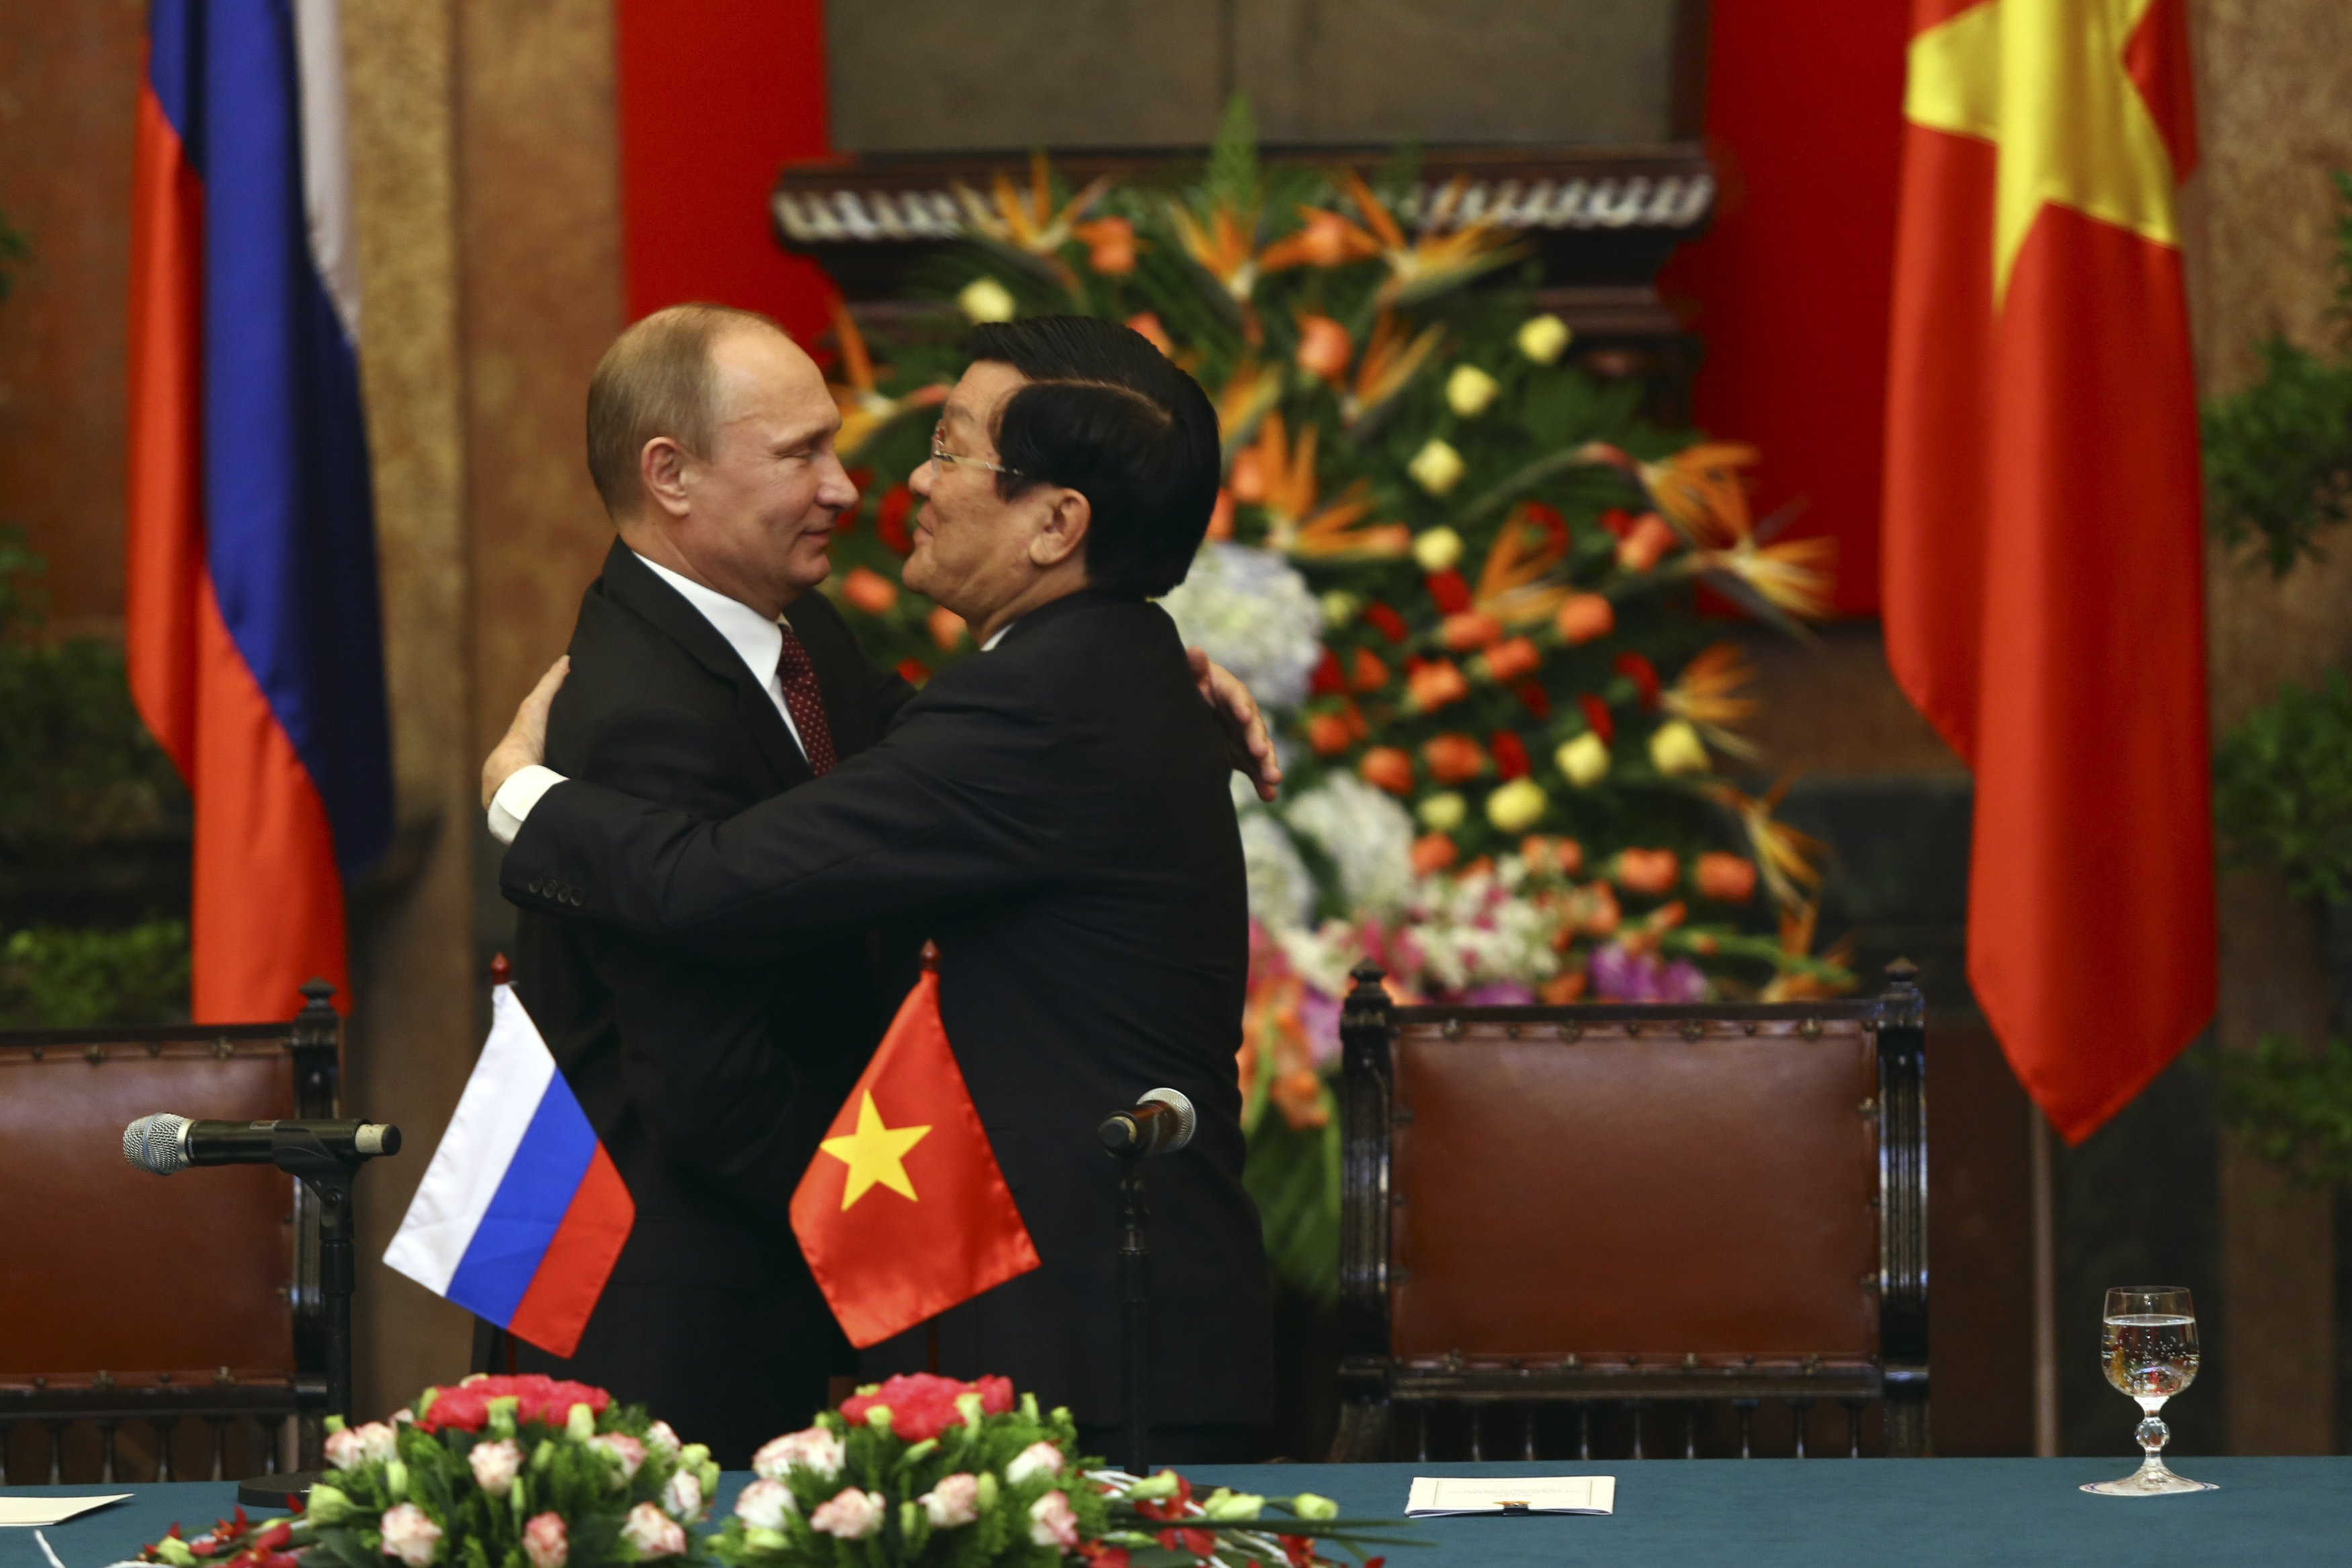 Vietnam's Growing Alliance with Russia: 5 Geopolitical Effects You Need to Know